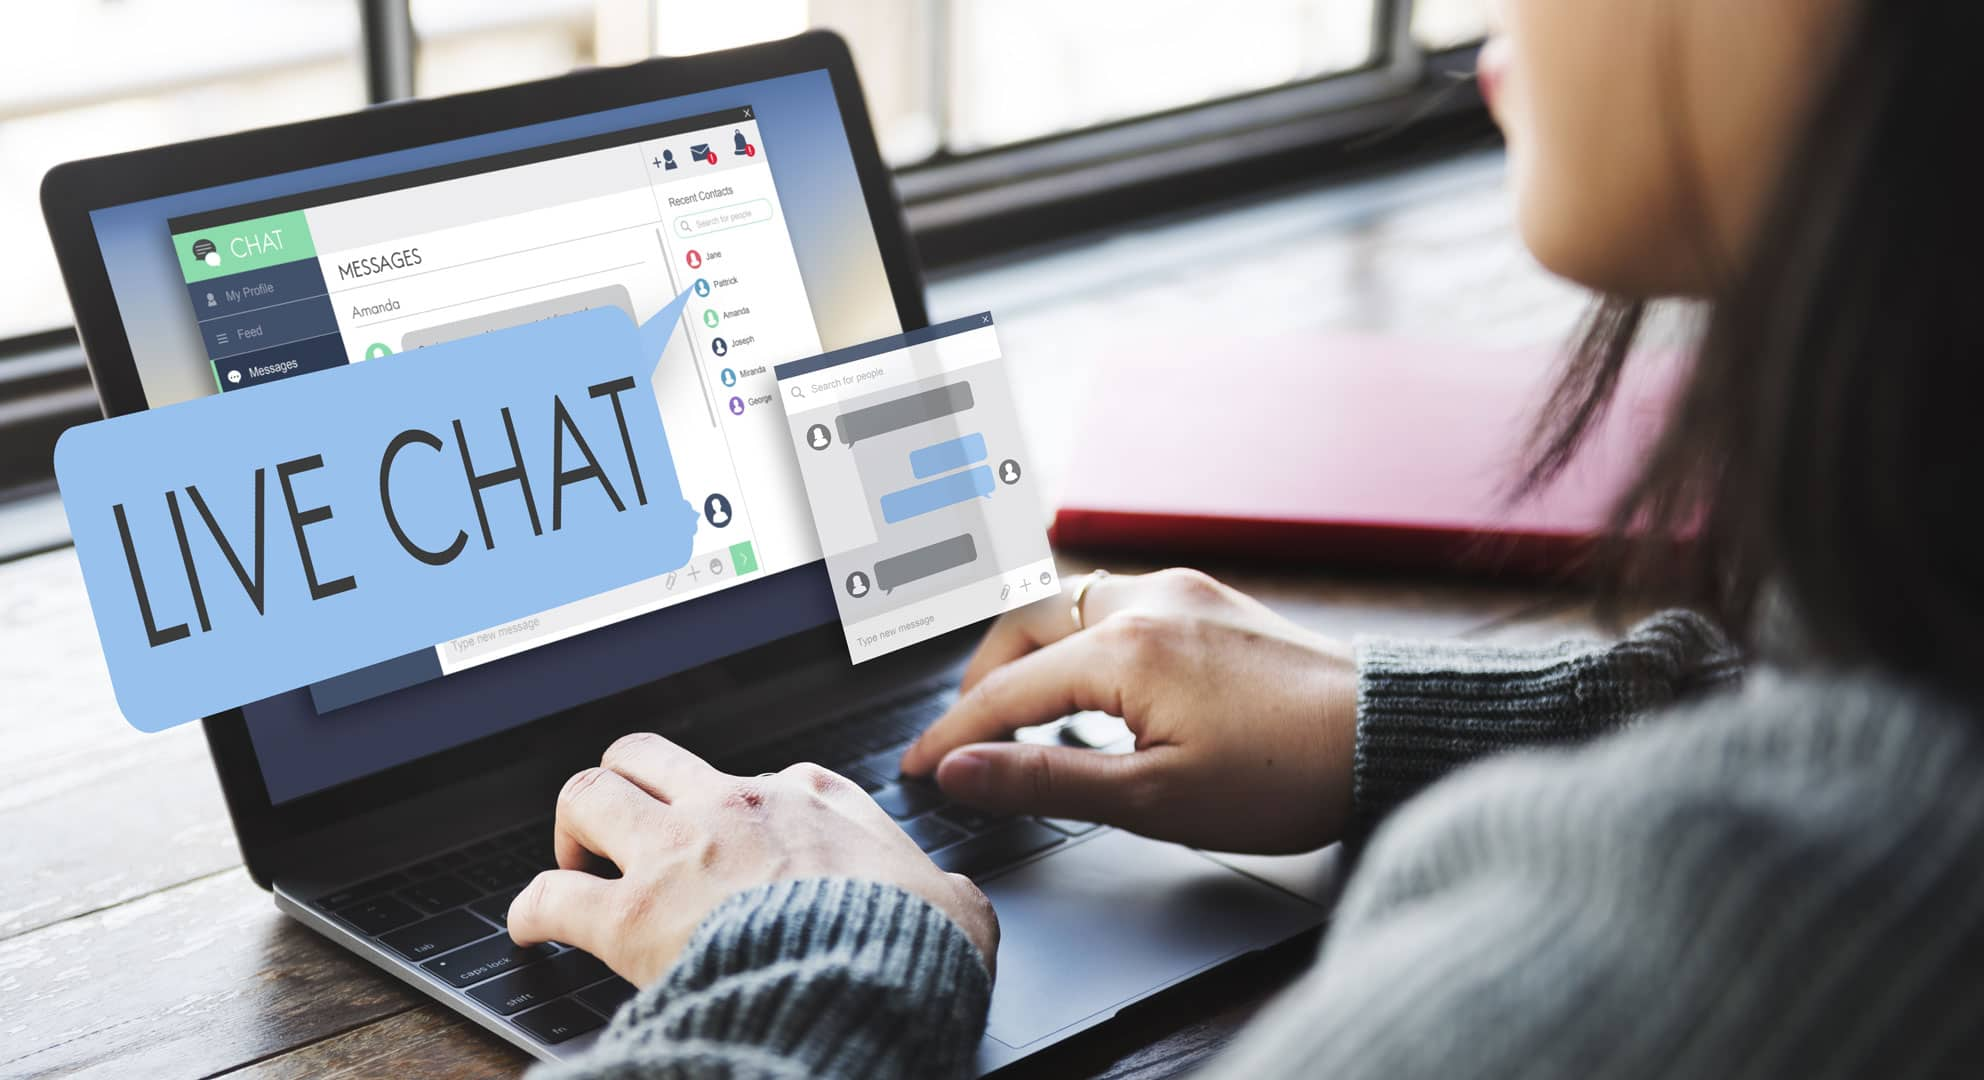 Live chat sector